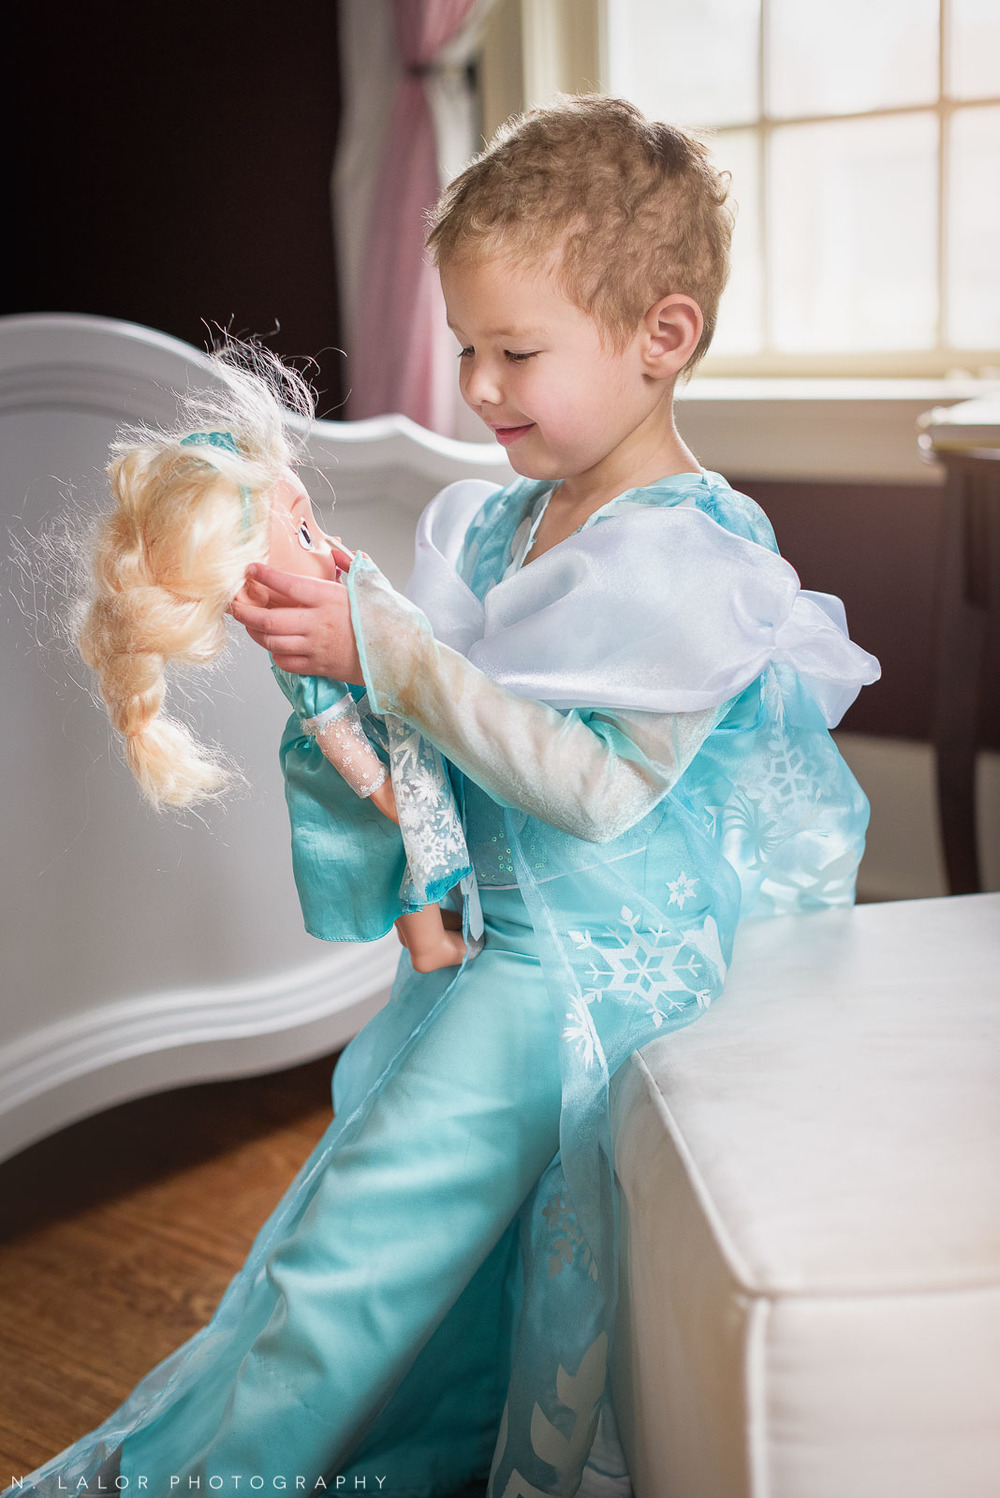 nlalor-photography-2015-evie-being-elsa-3.jpg